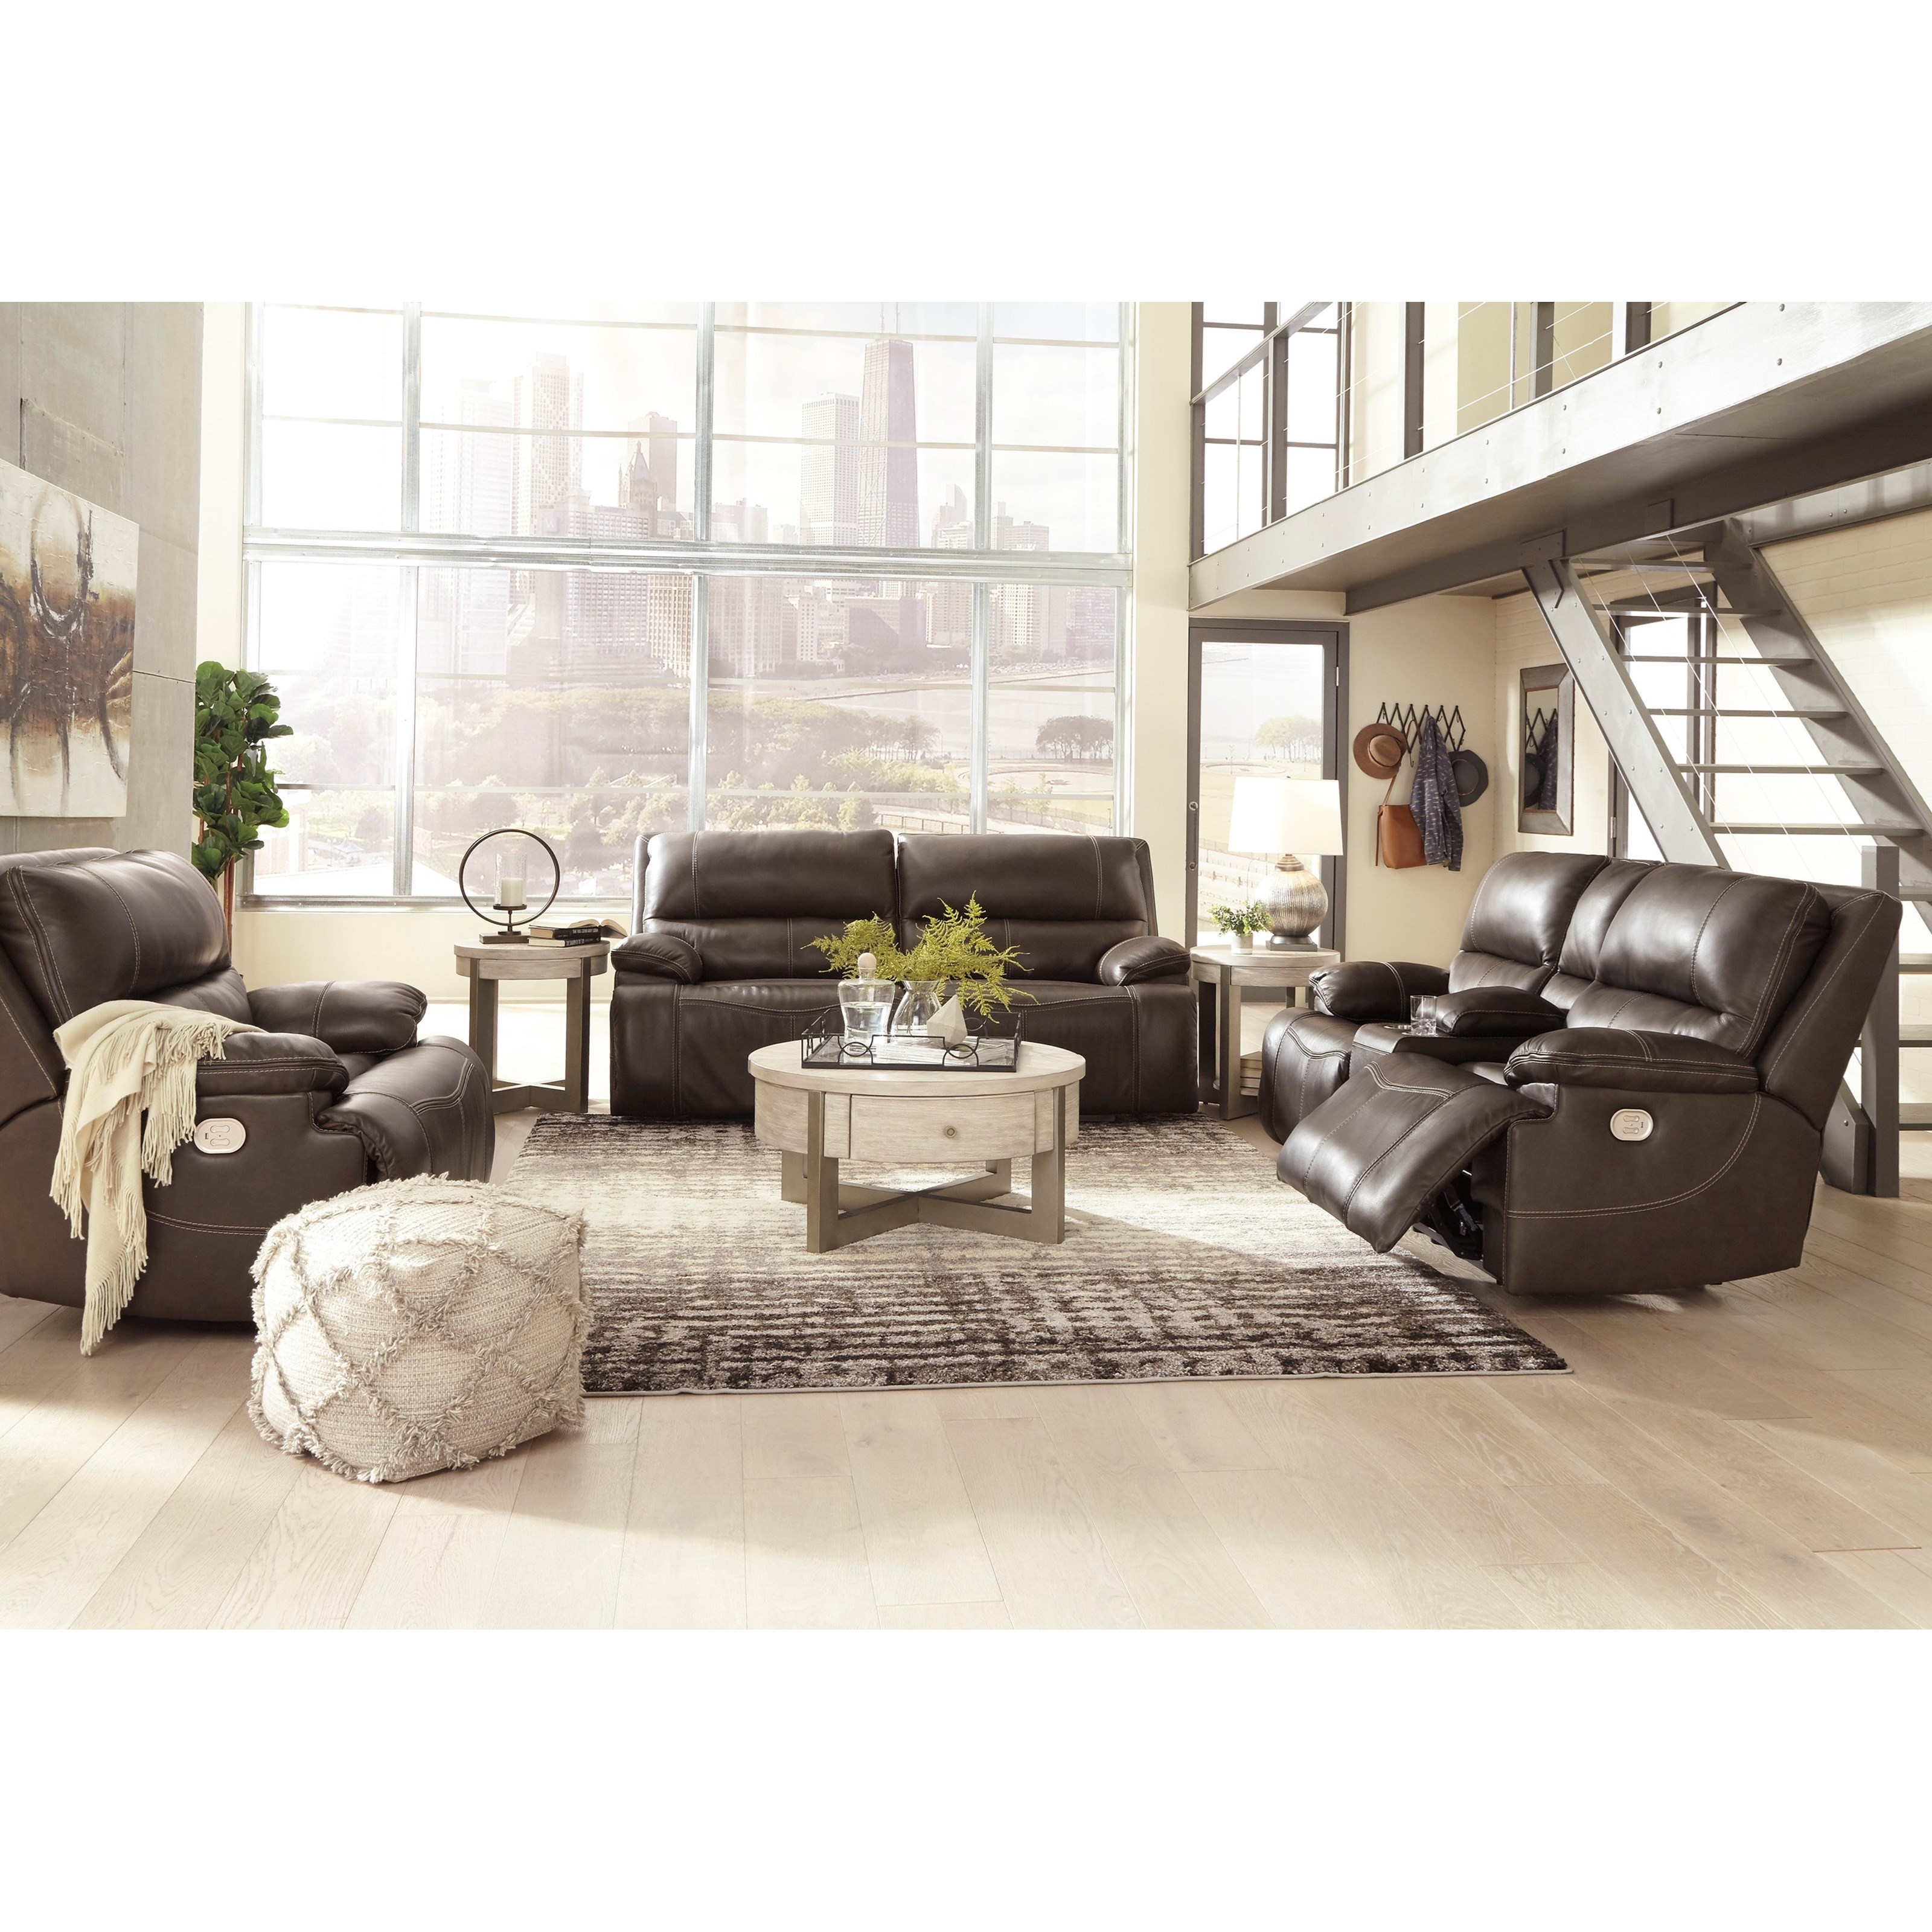 Ricmen Power Reclining Living Room Group by Signature Design by Ashley at Zak's Warehouse Clearance Center